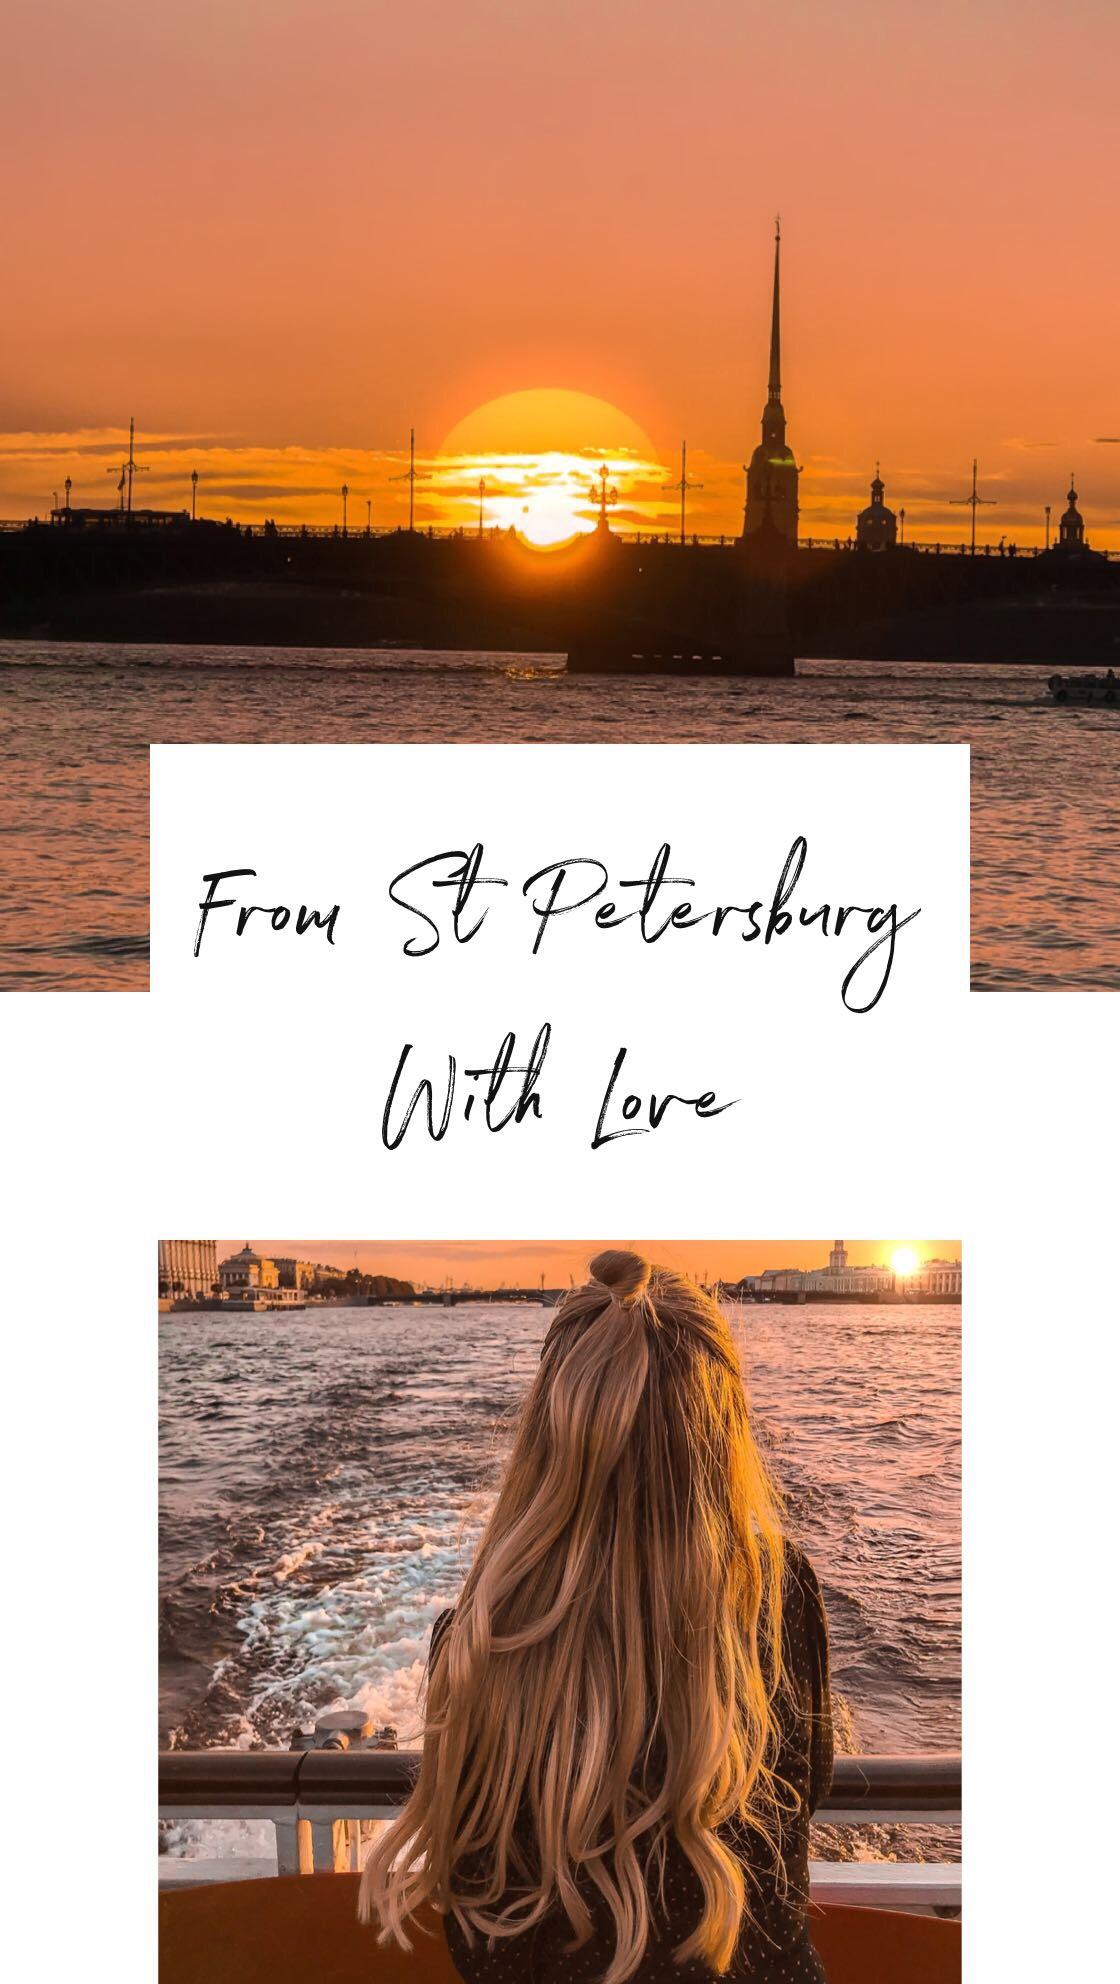 www.lindahaggh.com from St Petersburg with love.jpg